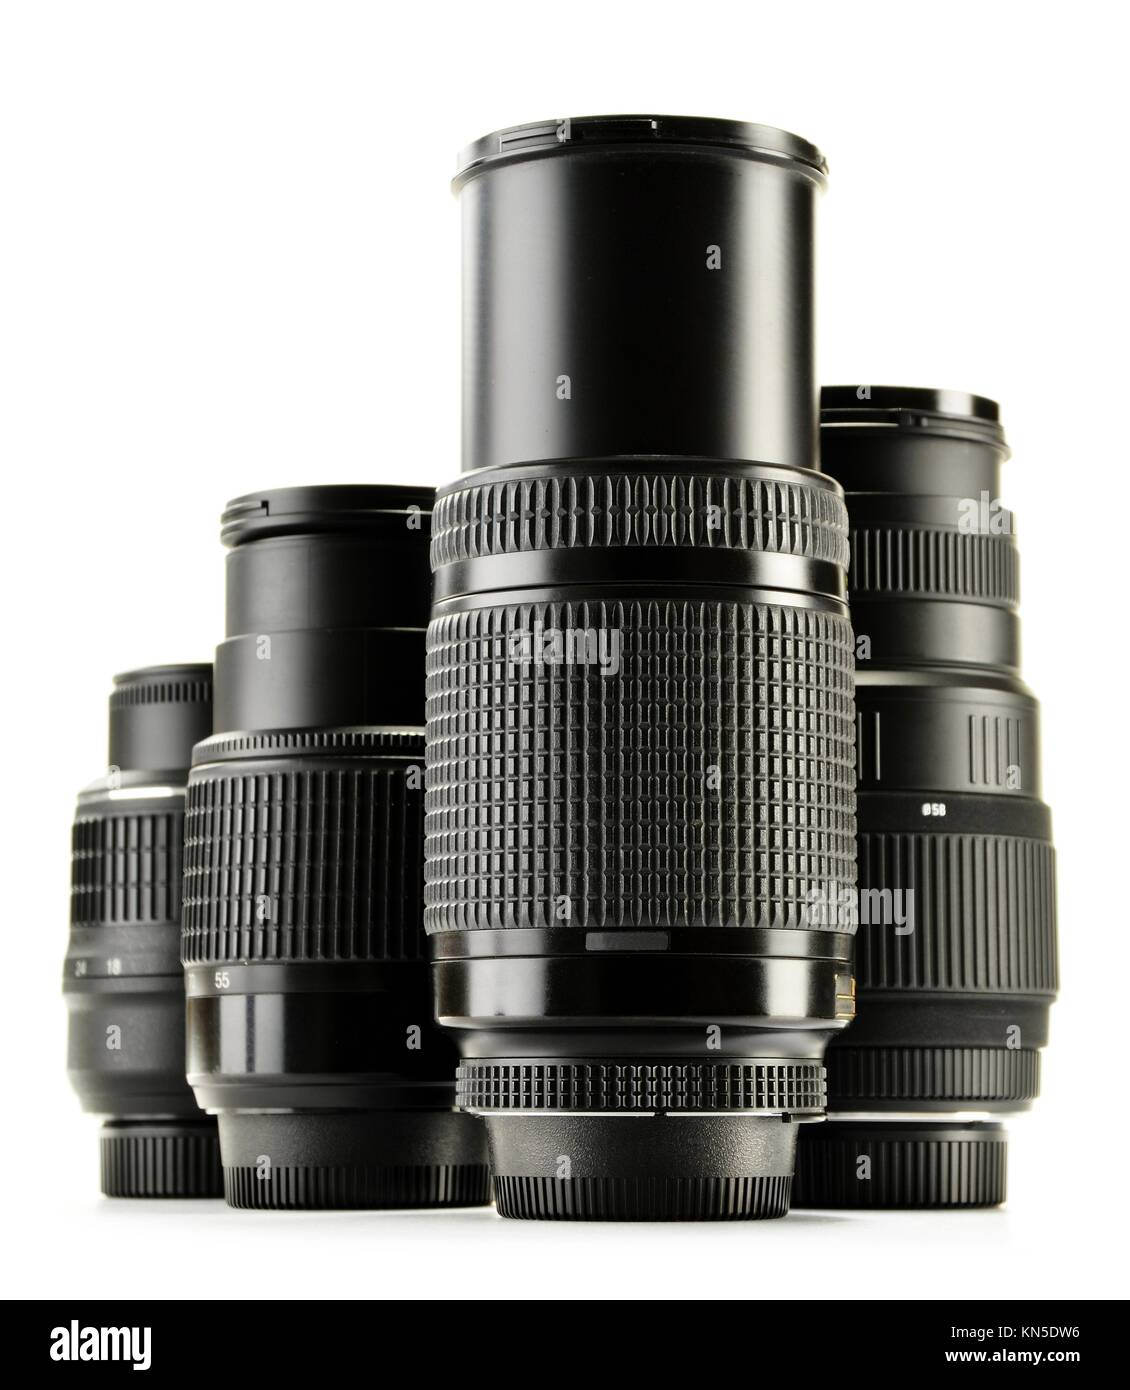 Photo zoom lenses isolated on white background. - Stock Image